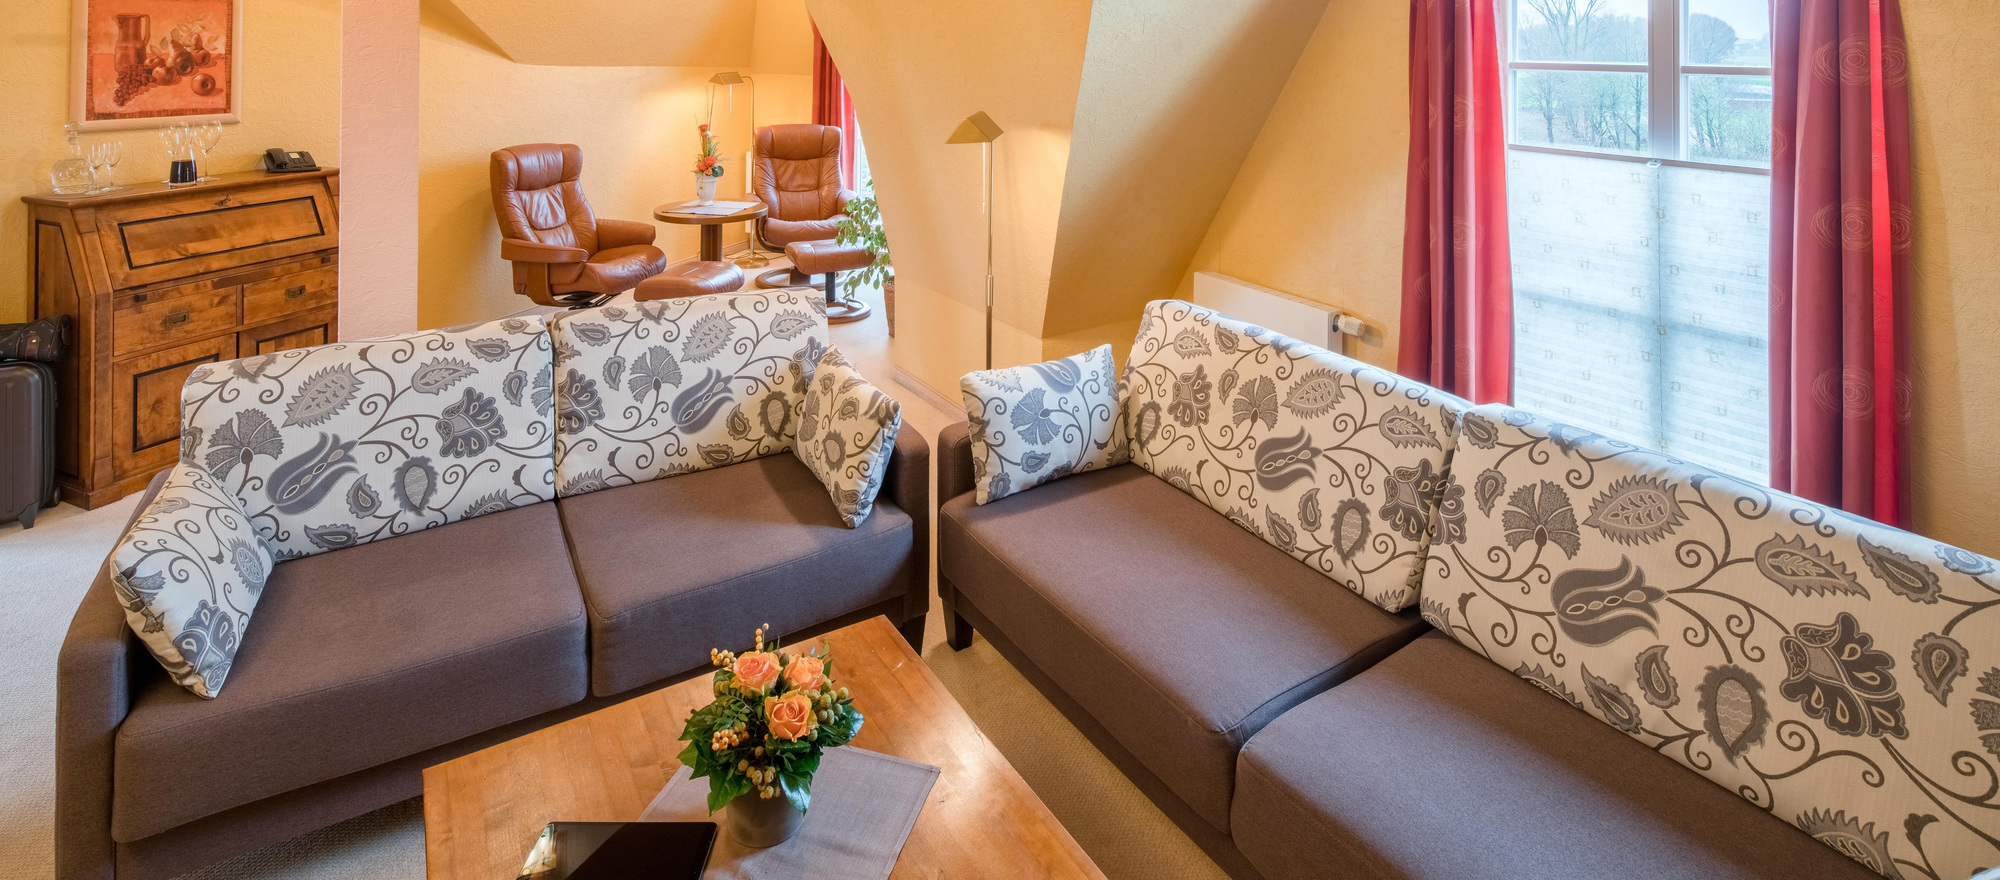 Spacious room with living room couch at the 4-star hotel Ringhotel Altes Zollhaus in Horumersiel